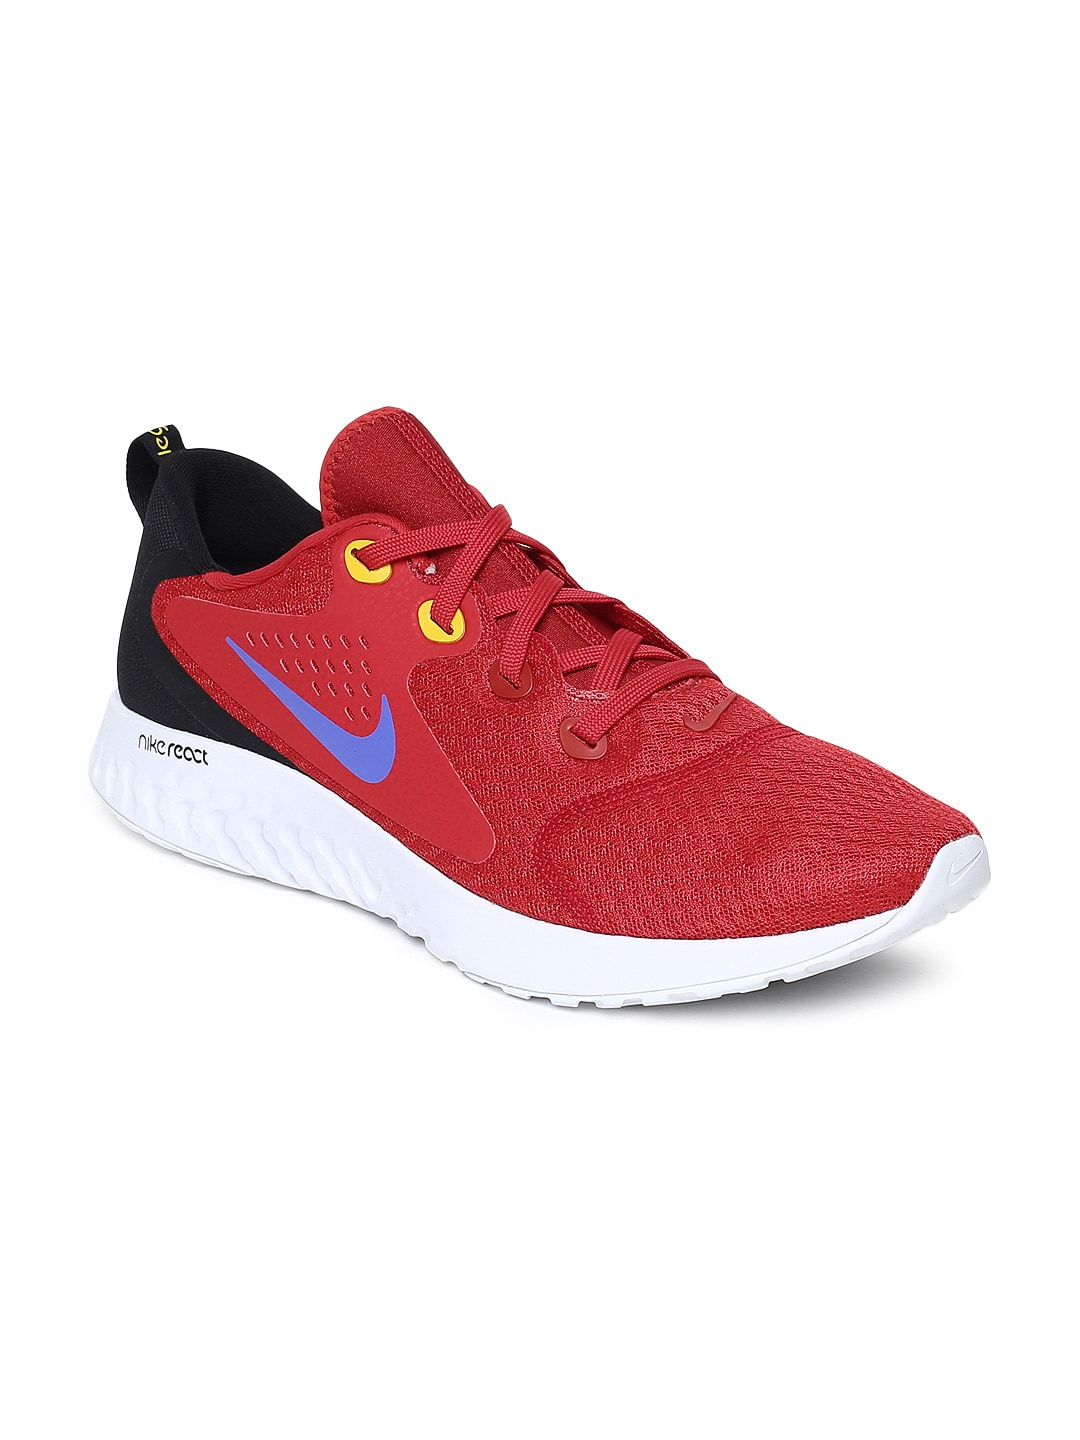 4aacad16dc3a Nike Red Shoes - Buy Nike Red Shoes Online in India